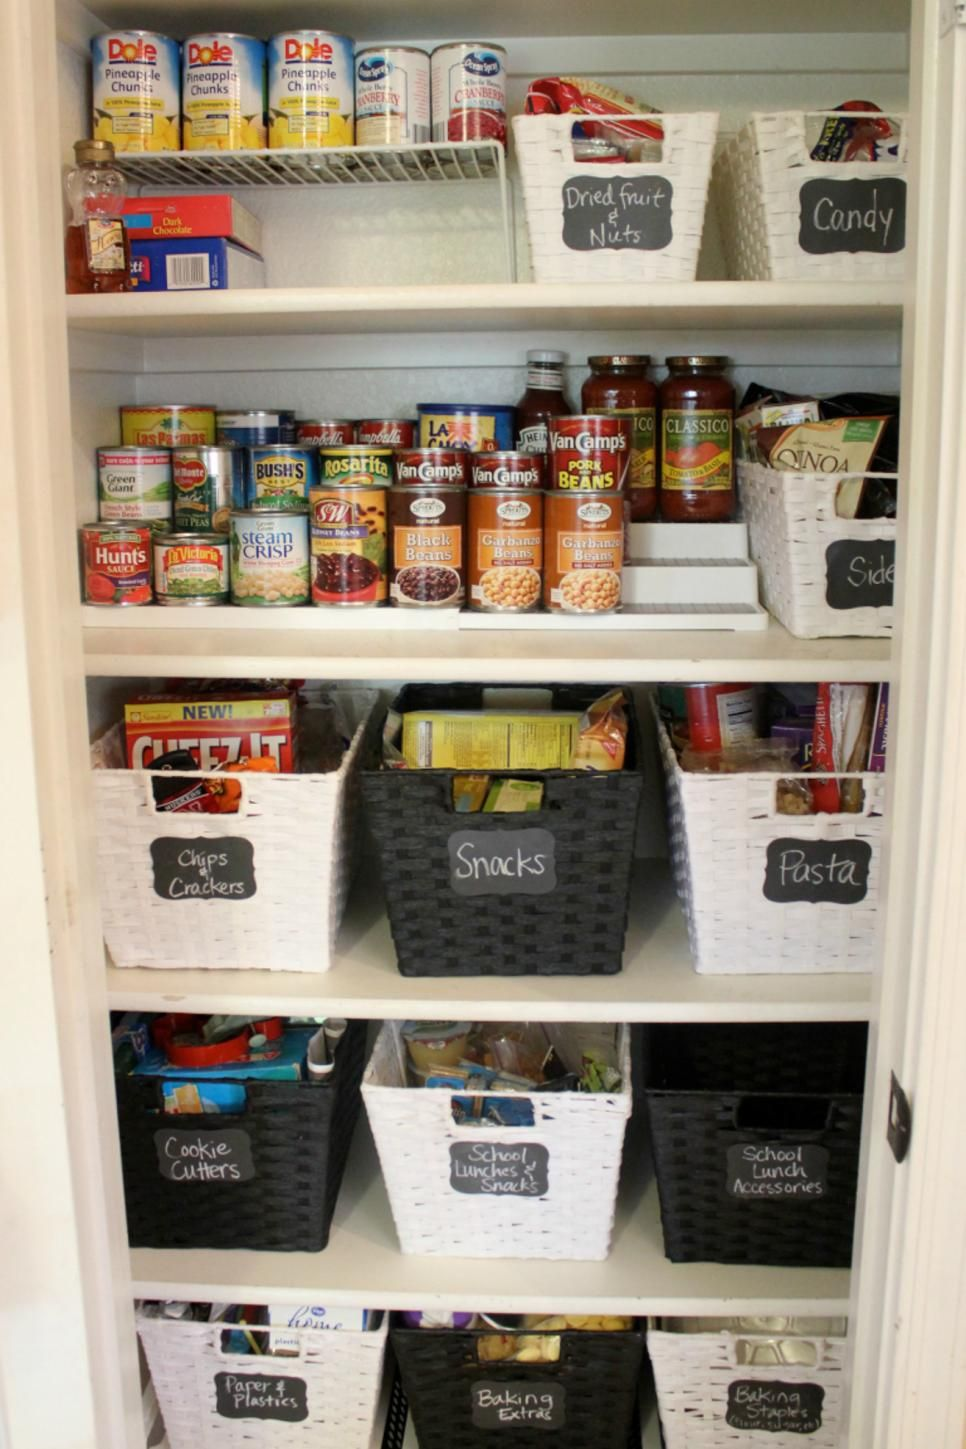 kitchen pantry organizer quarter sawn oak cabinets 20 best organizers pinterest turn your cluttered into a storage dream with these great from the decorating experts at hgtv com